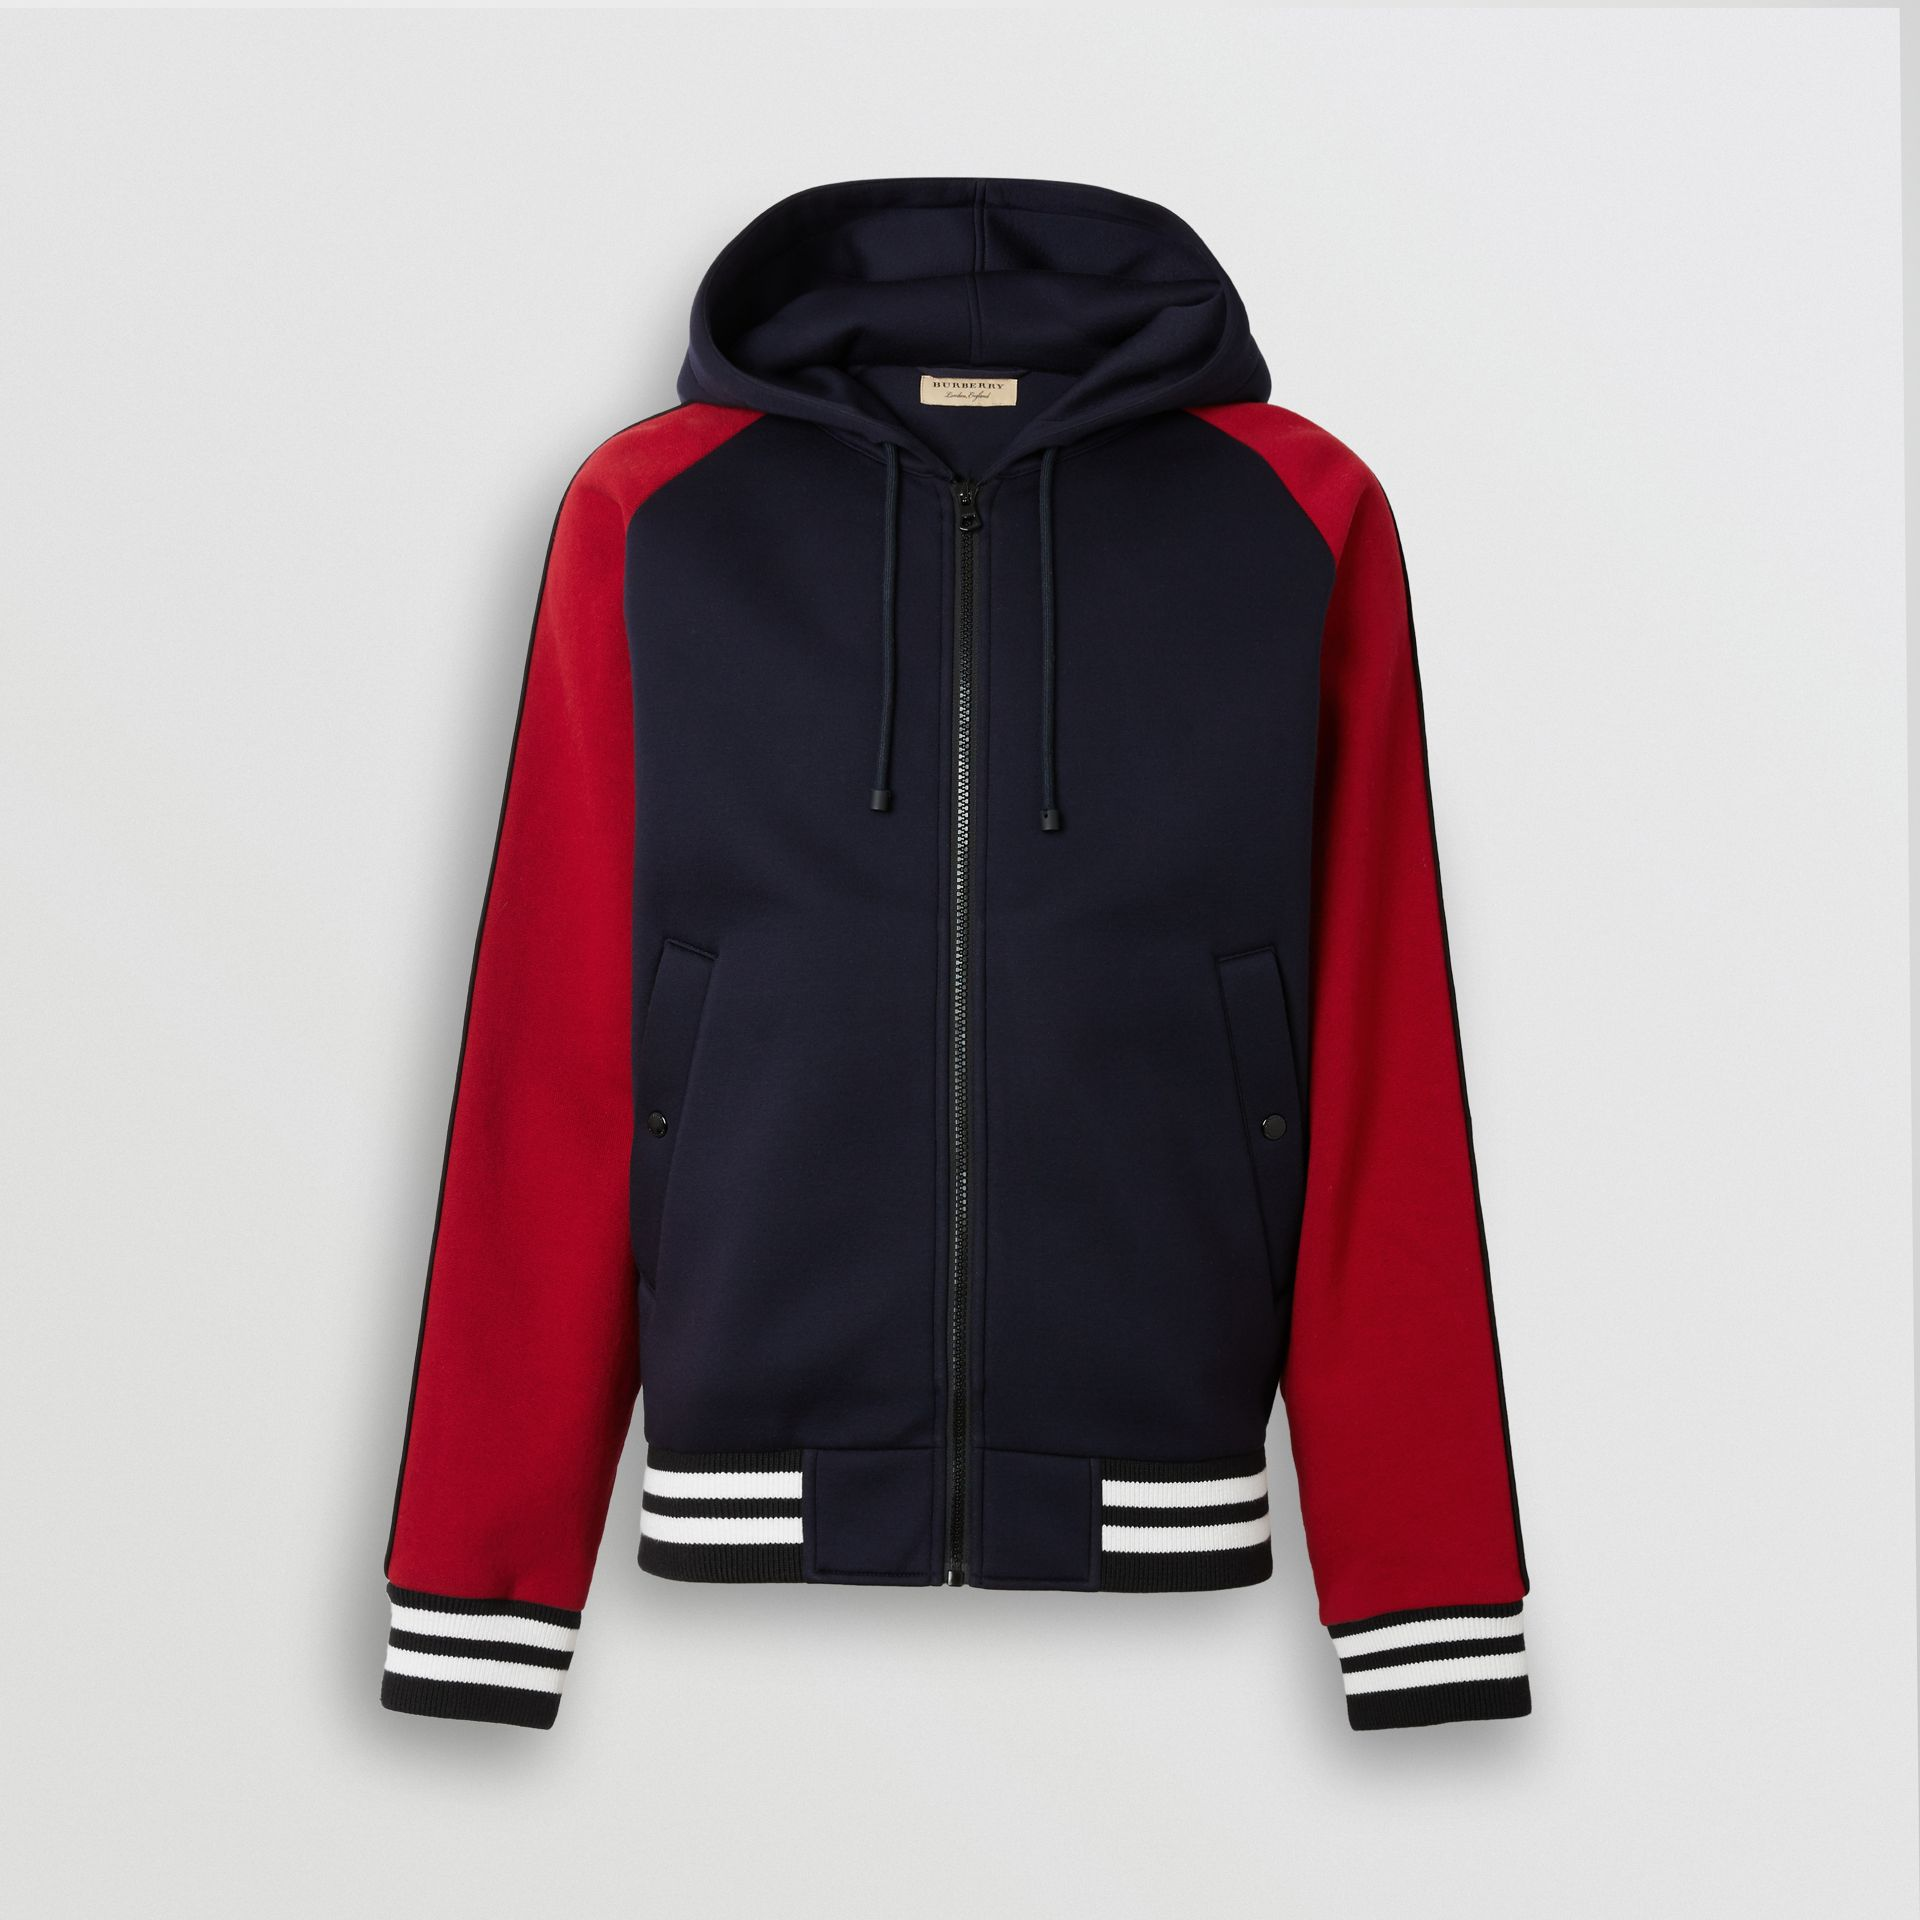 Contrast Crest Neoprene Hooded Top in Navy - Men | Burberry - gallery image 3